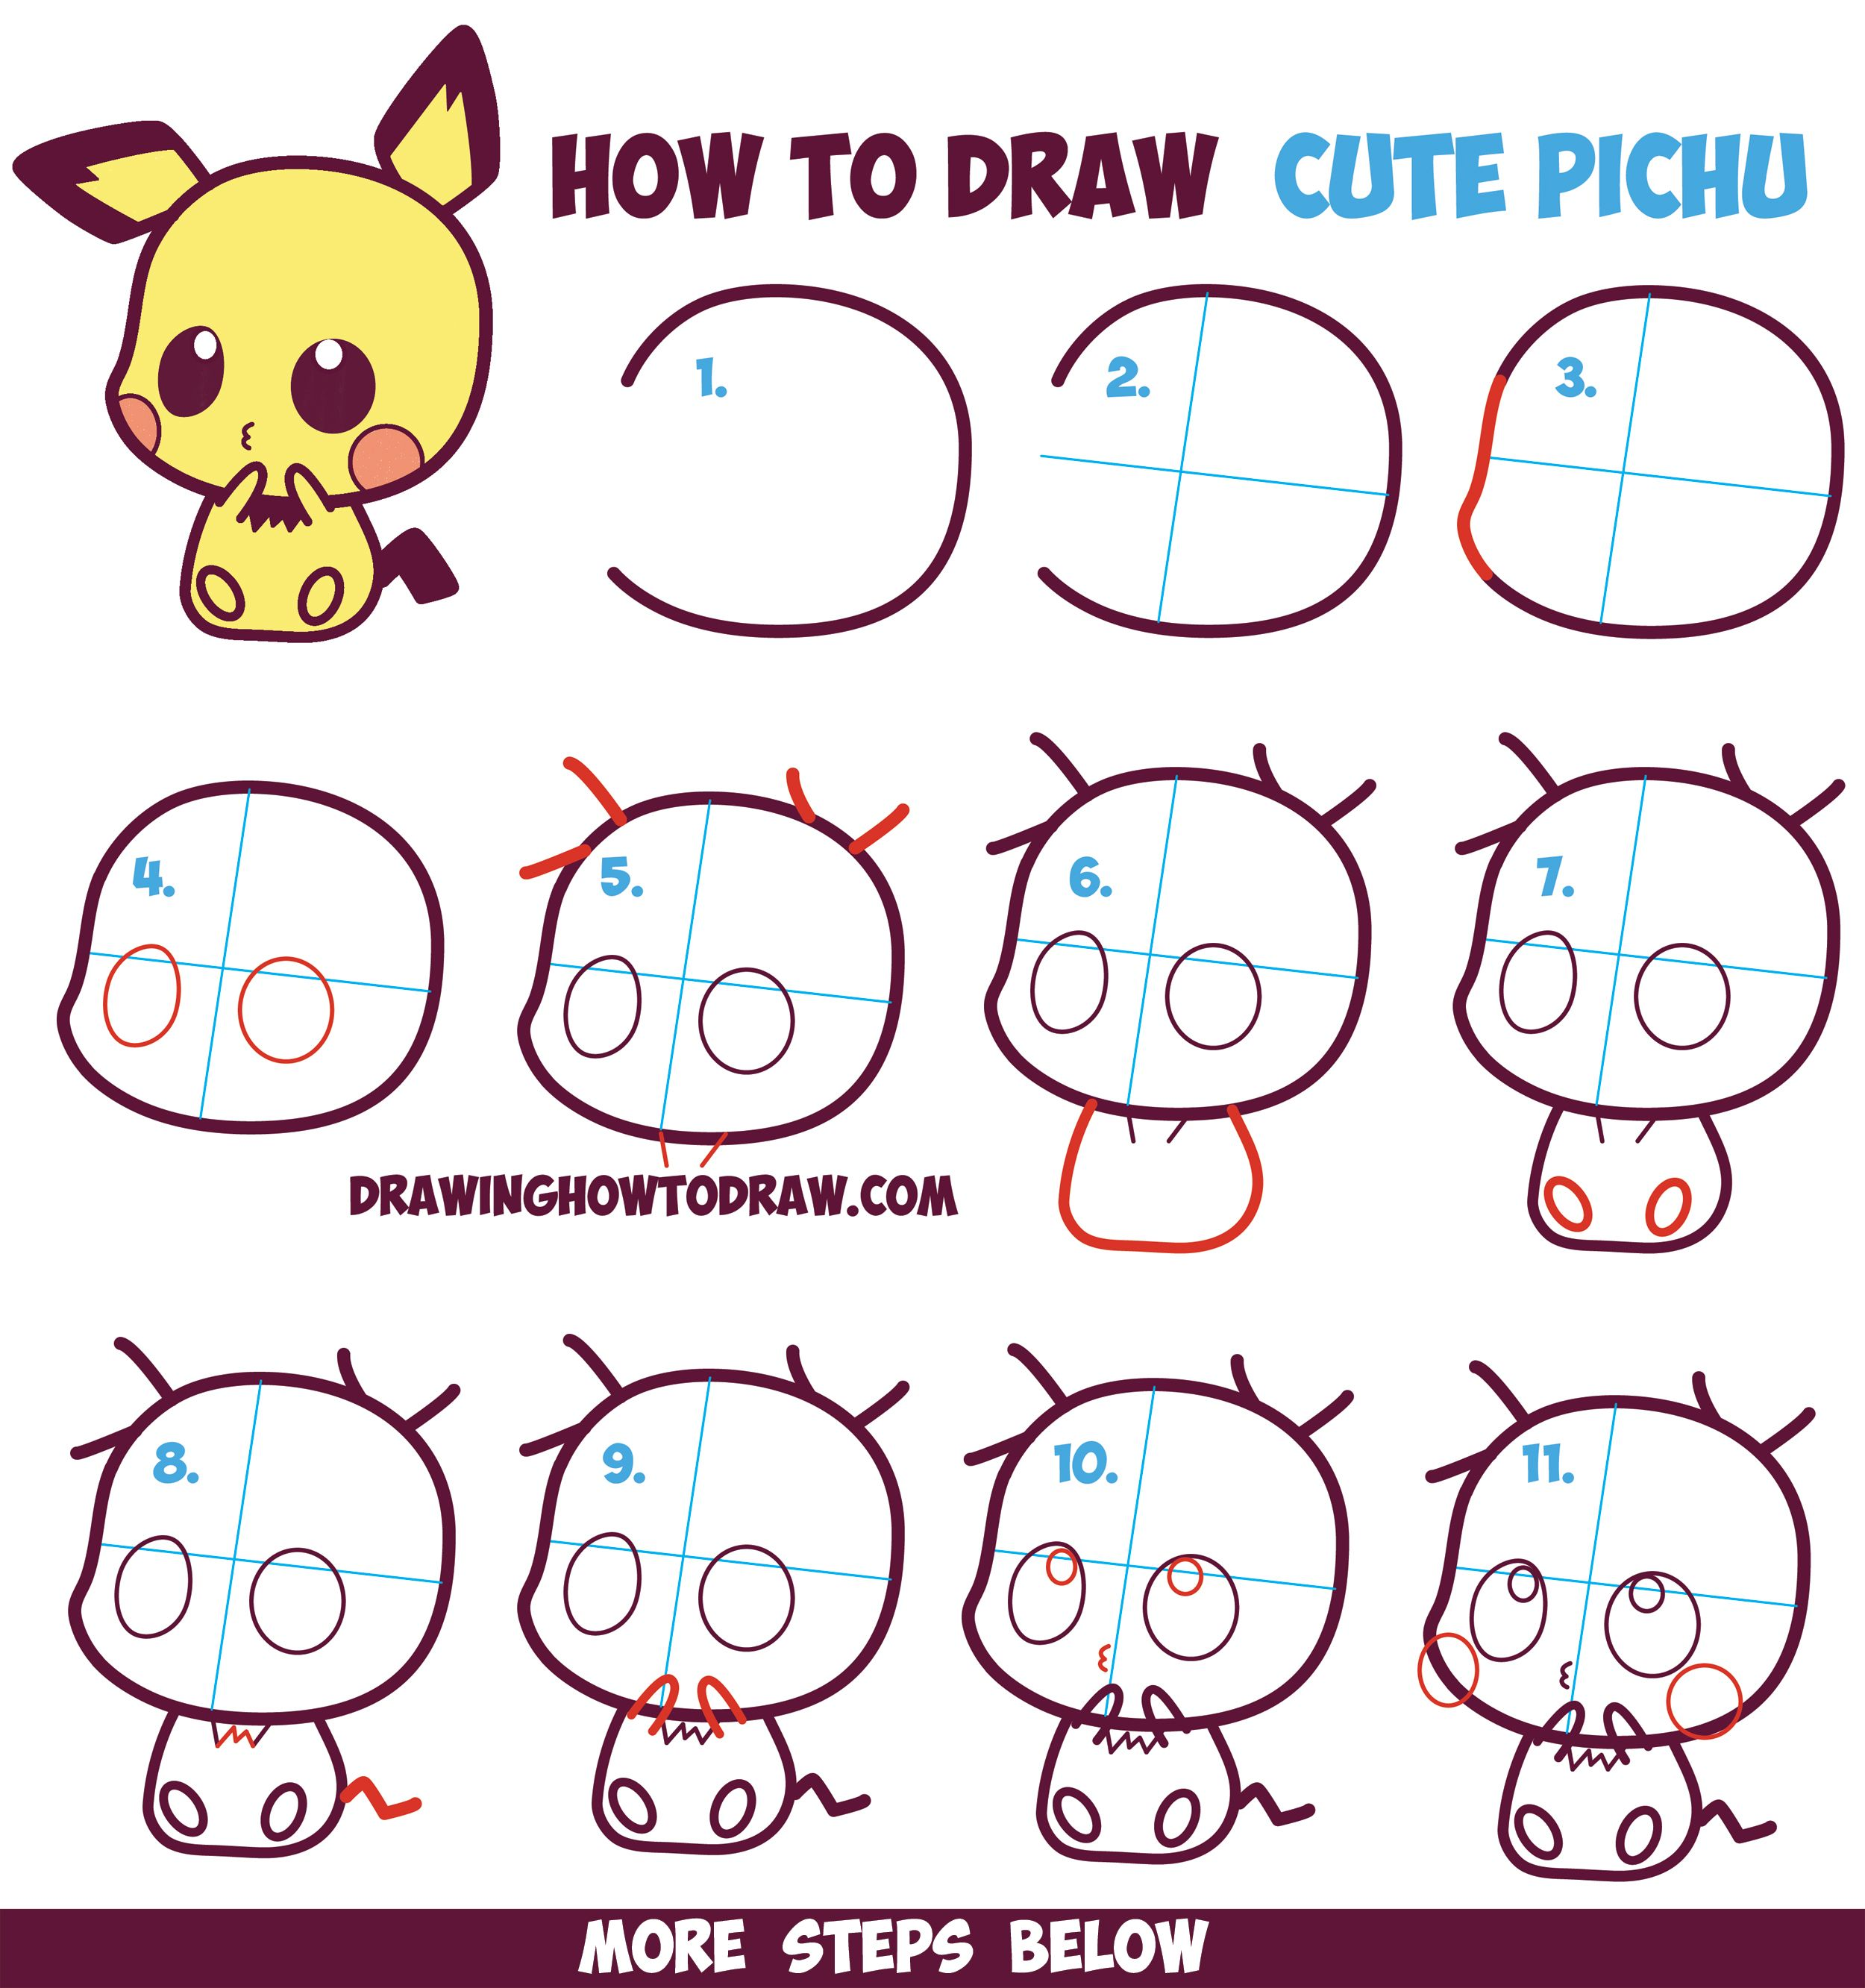 How To Draw Cute Kawaii Chibi Pichu From Pokemon In Easy Step By